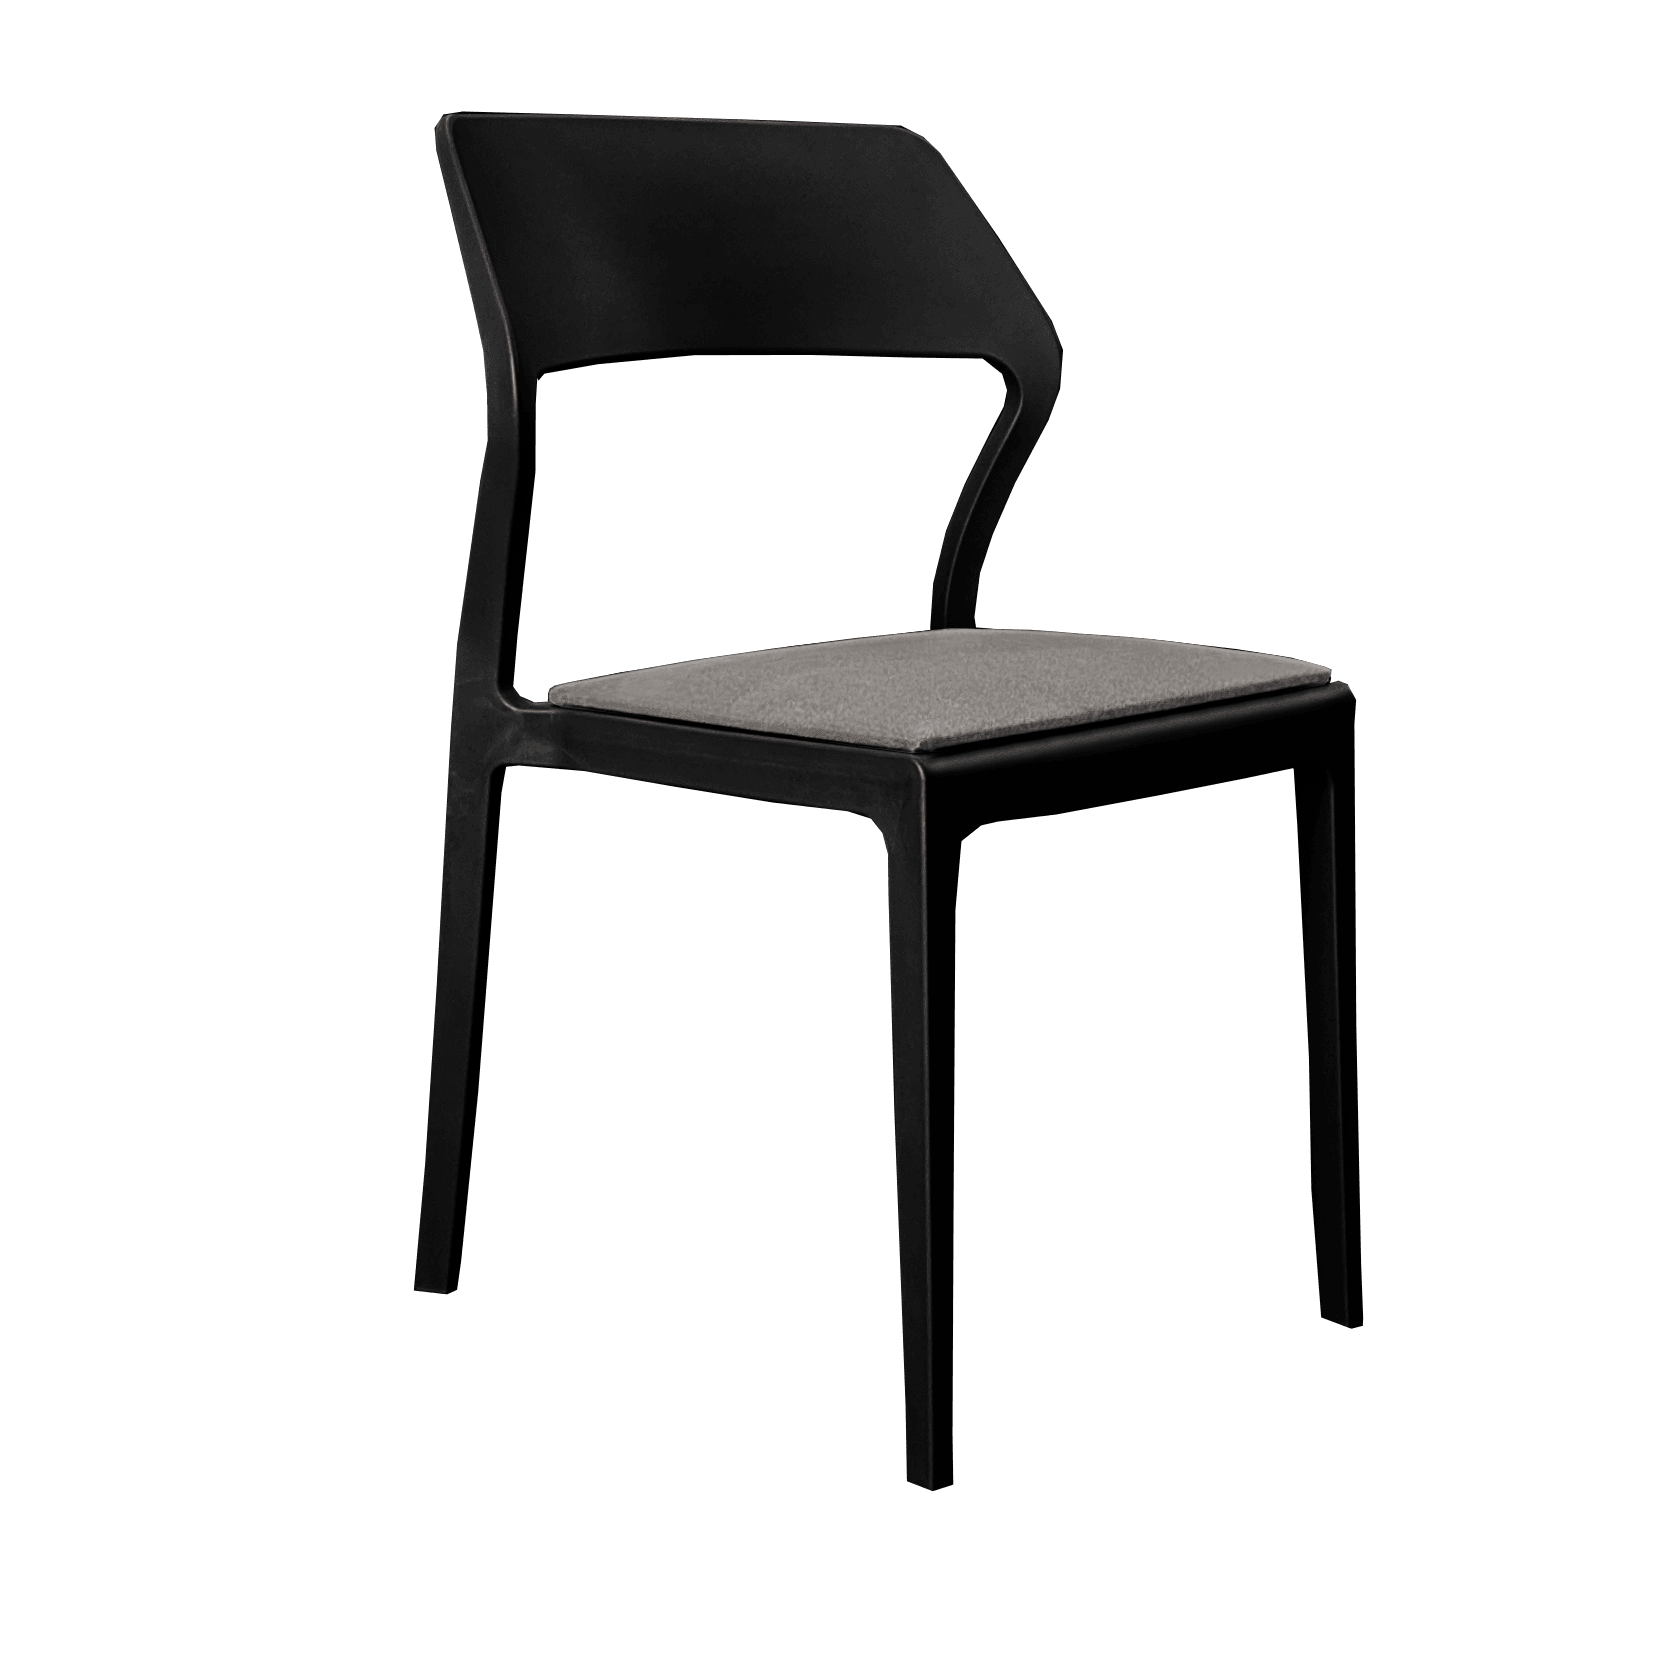 Seat Cushion - Anthracite Fabric (Snow/Plus Chair)